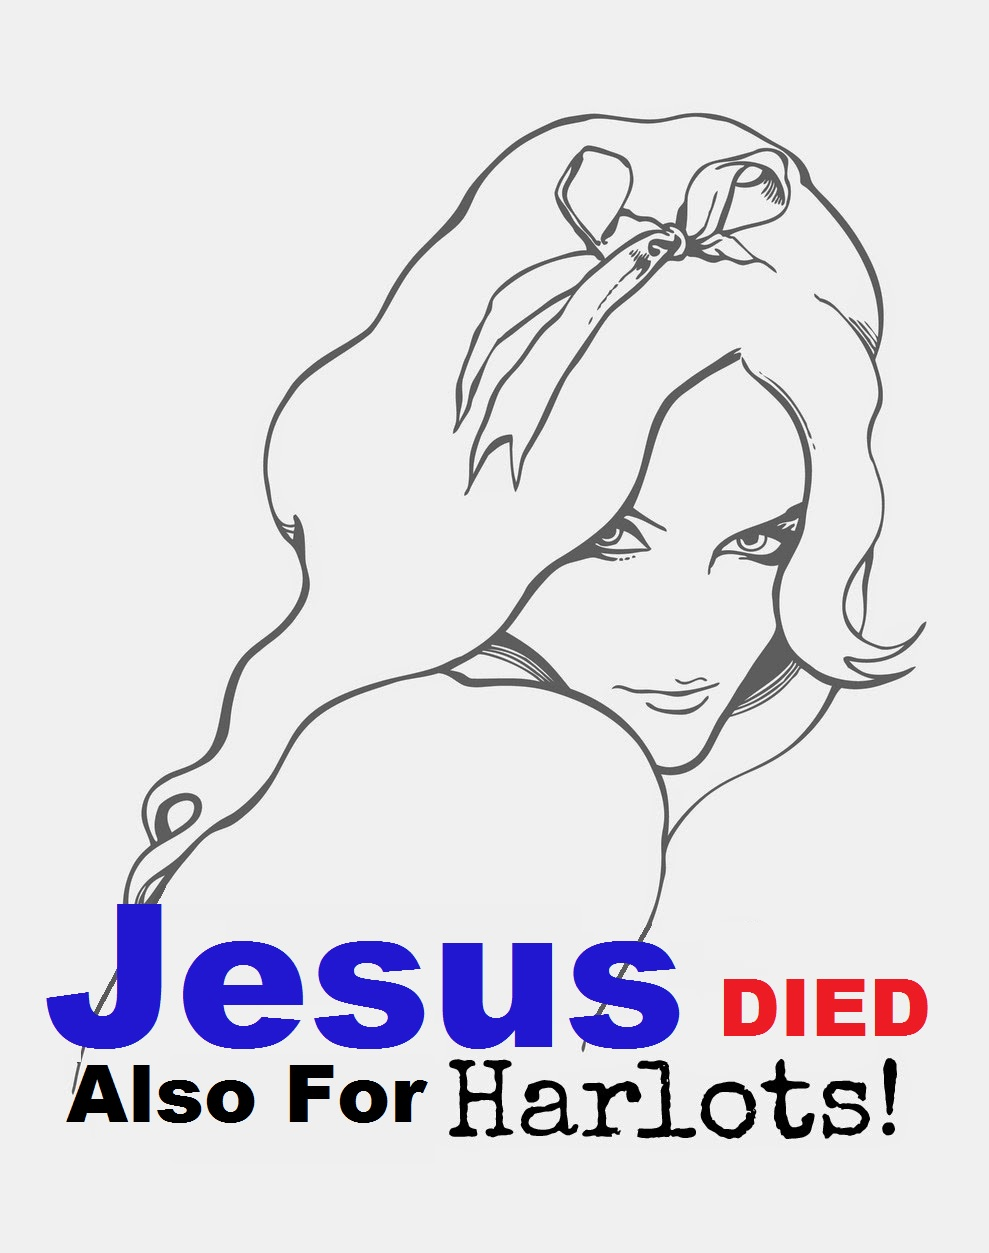 Jesus Died also for Prostitutes